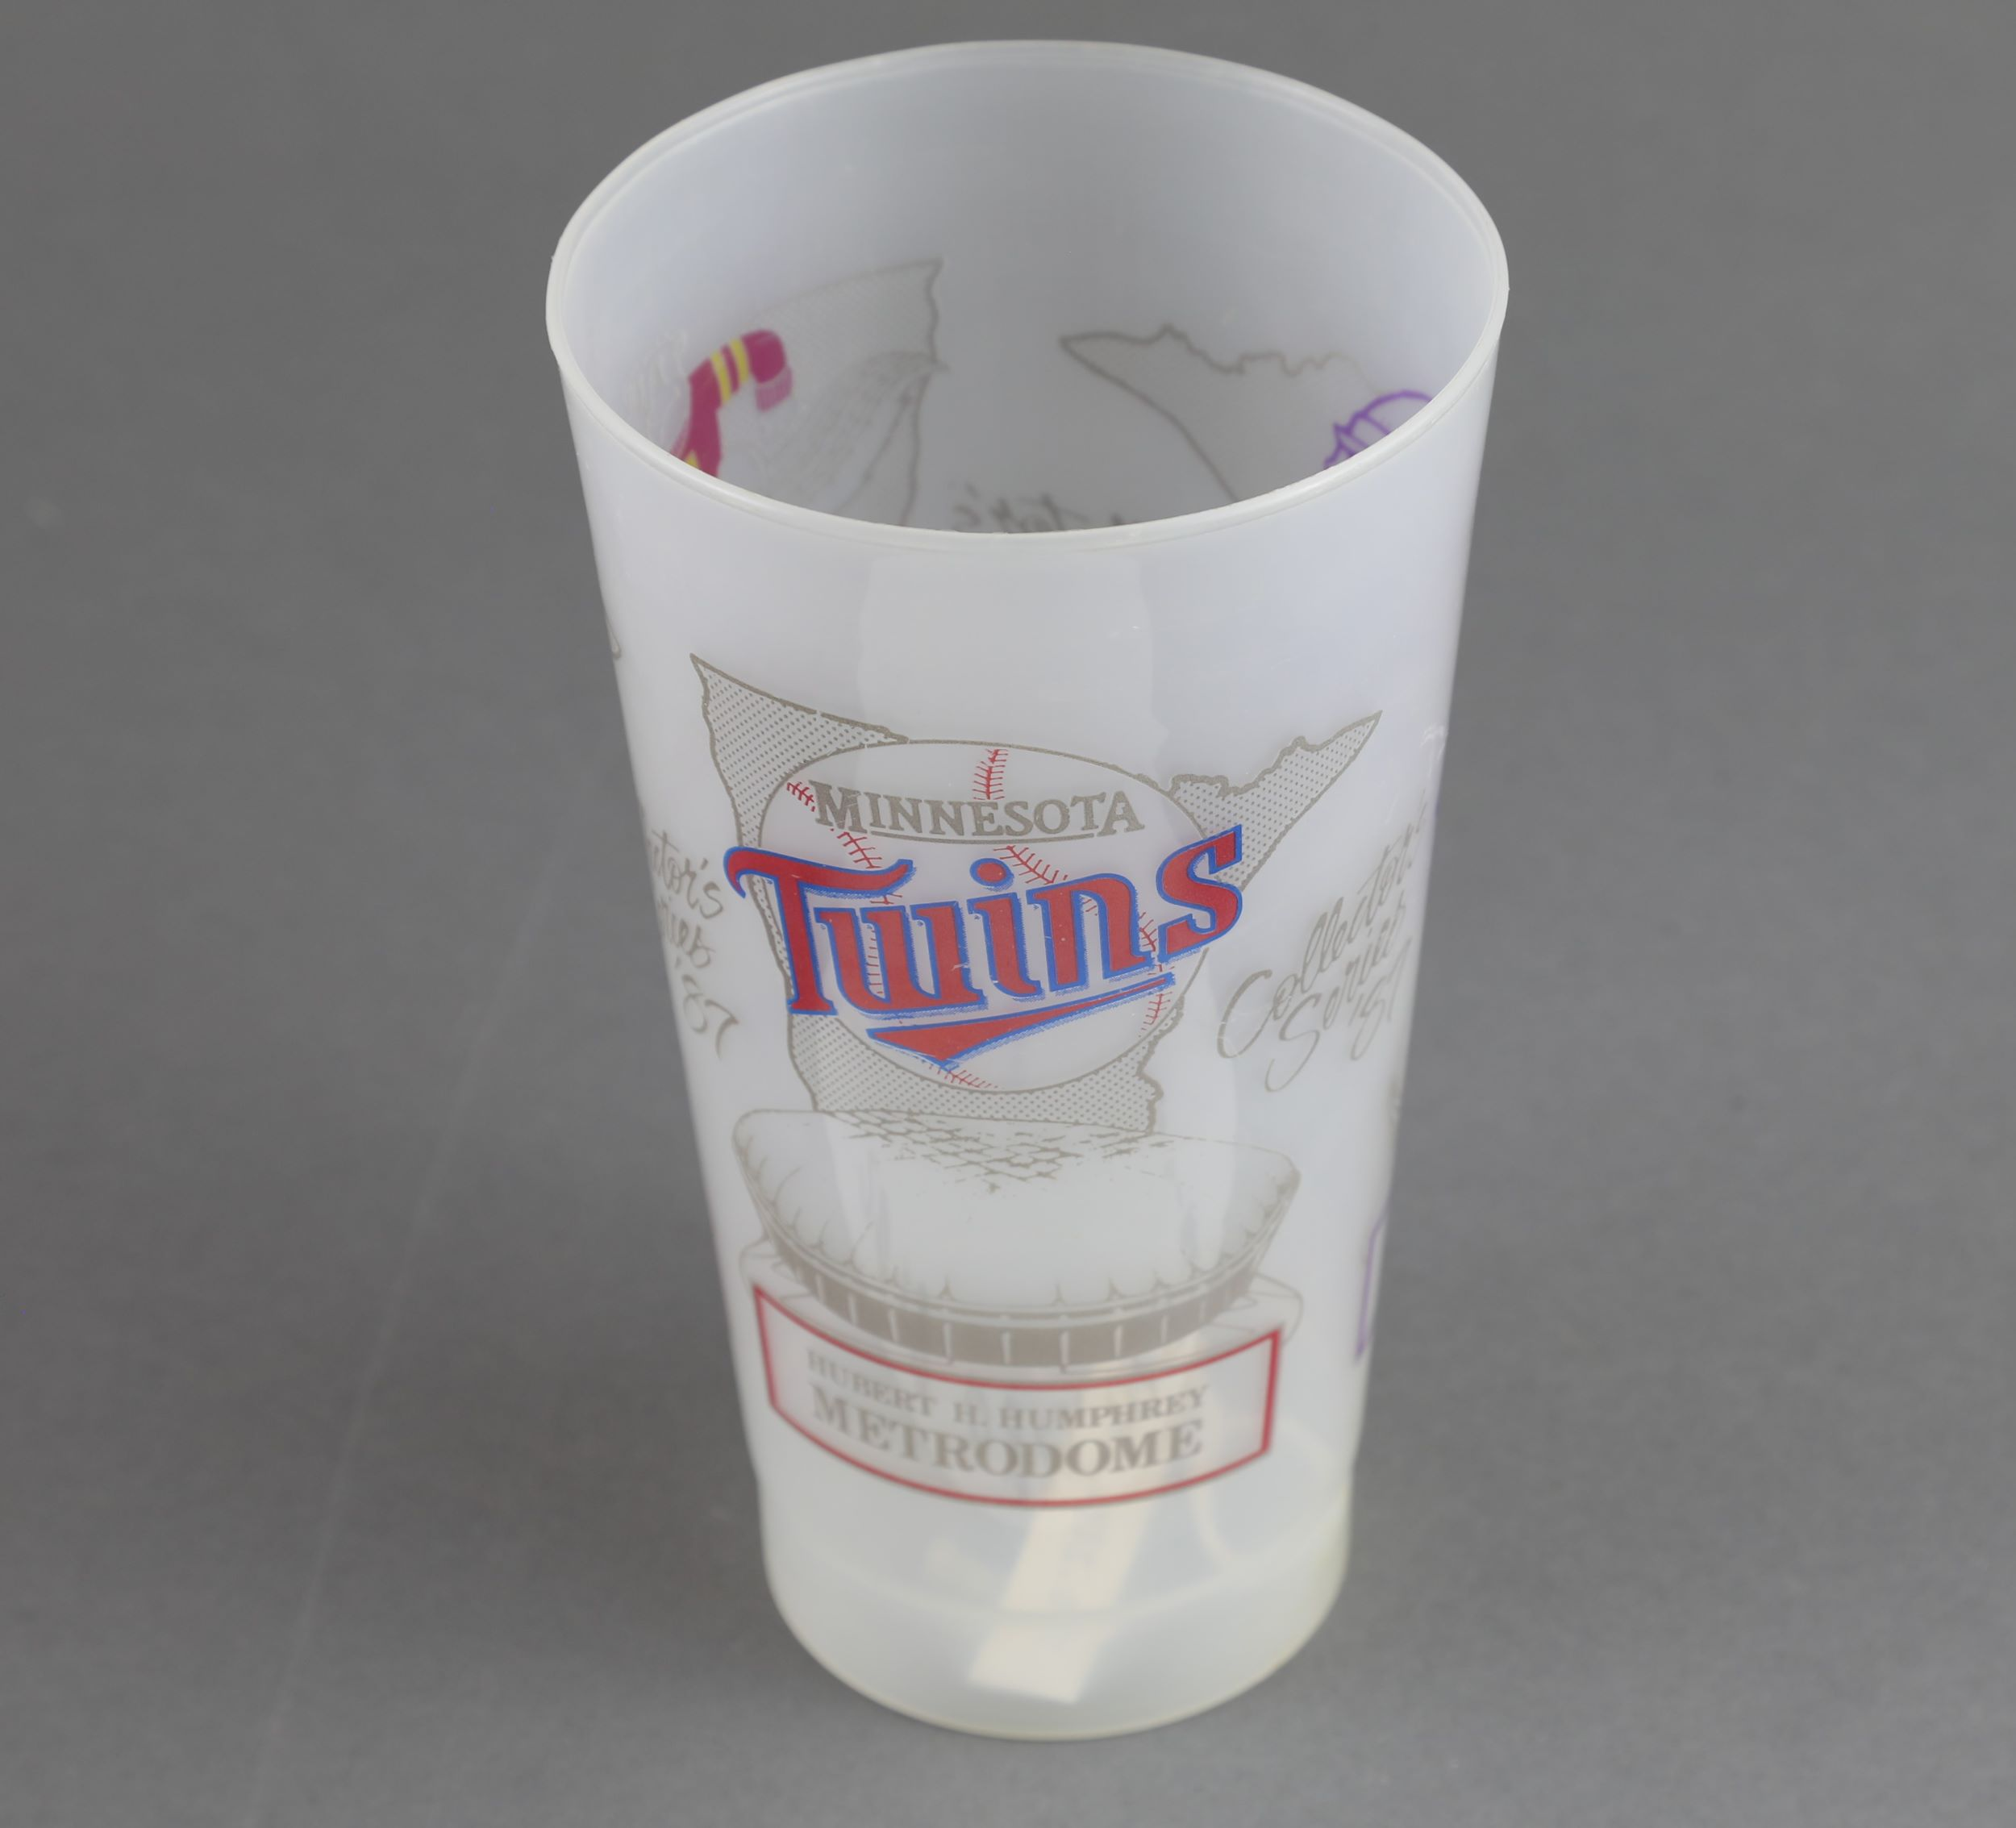 Image of Twins cup.